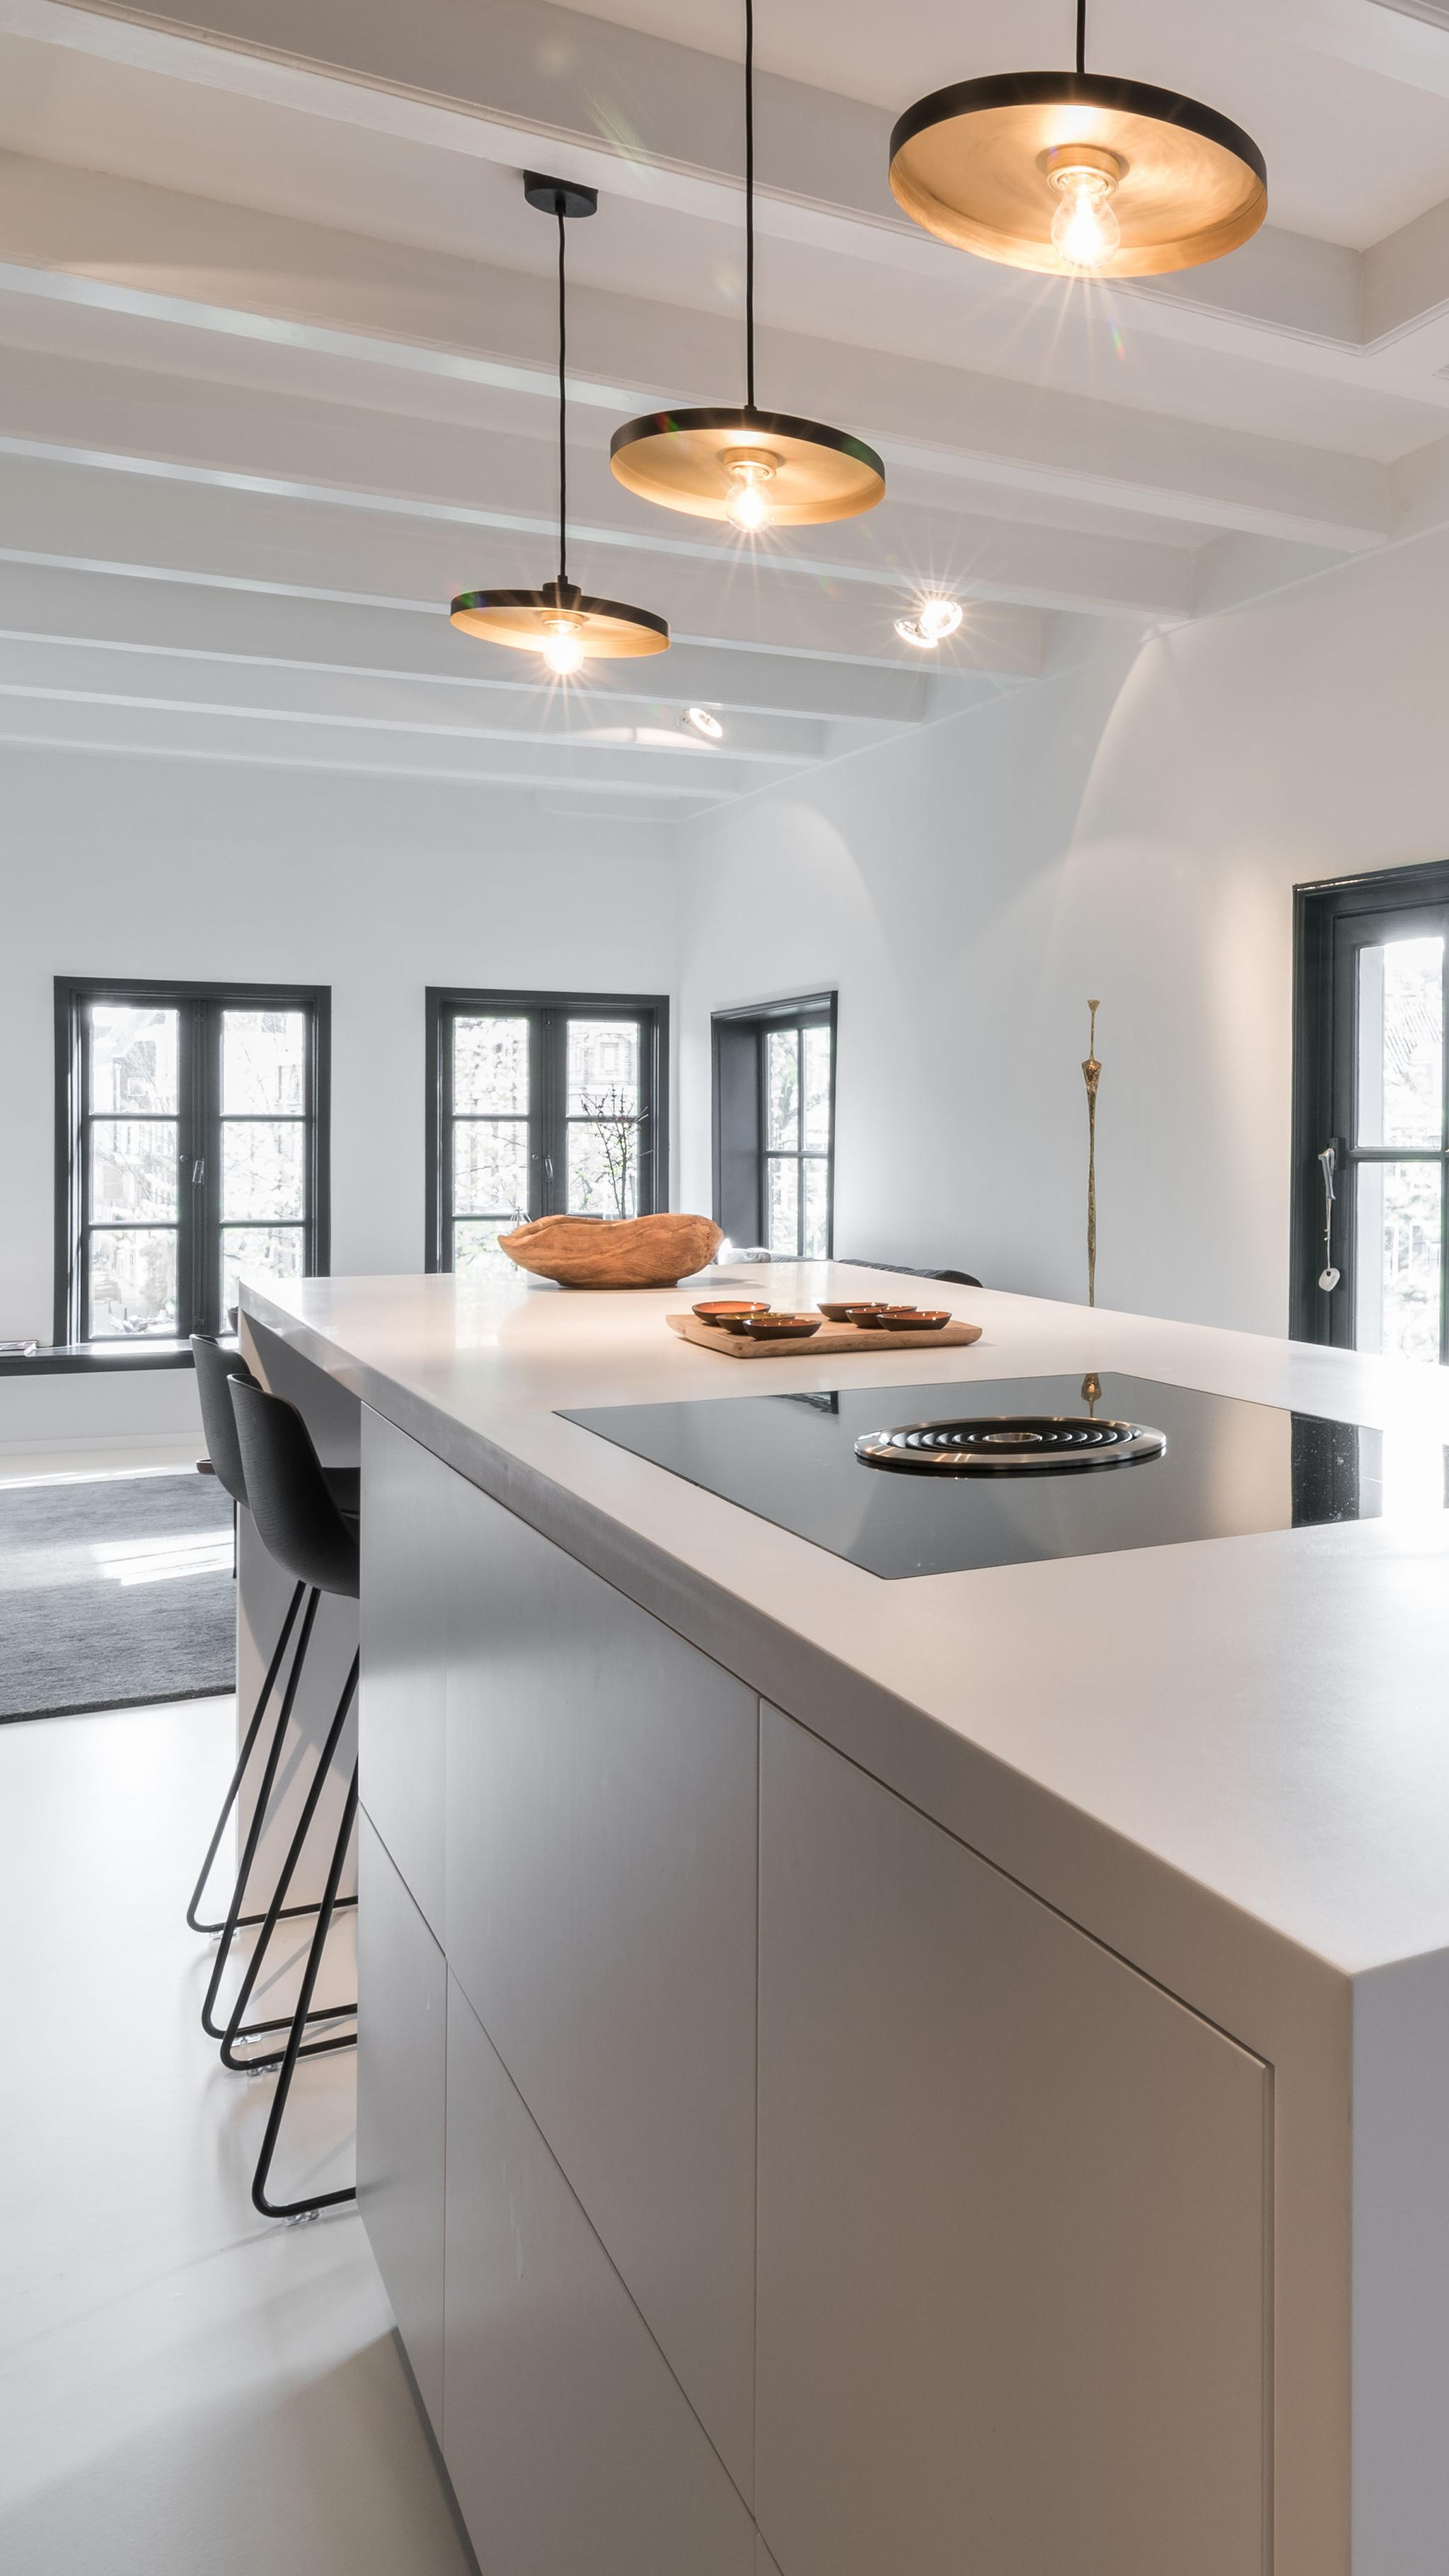 Kool_Kitchen_Constantin_Loft_Basic_015_Headerbild_P.jpg